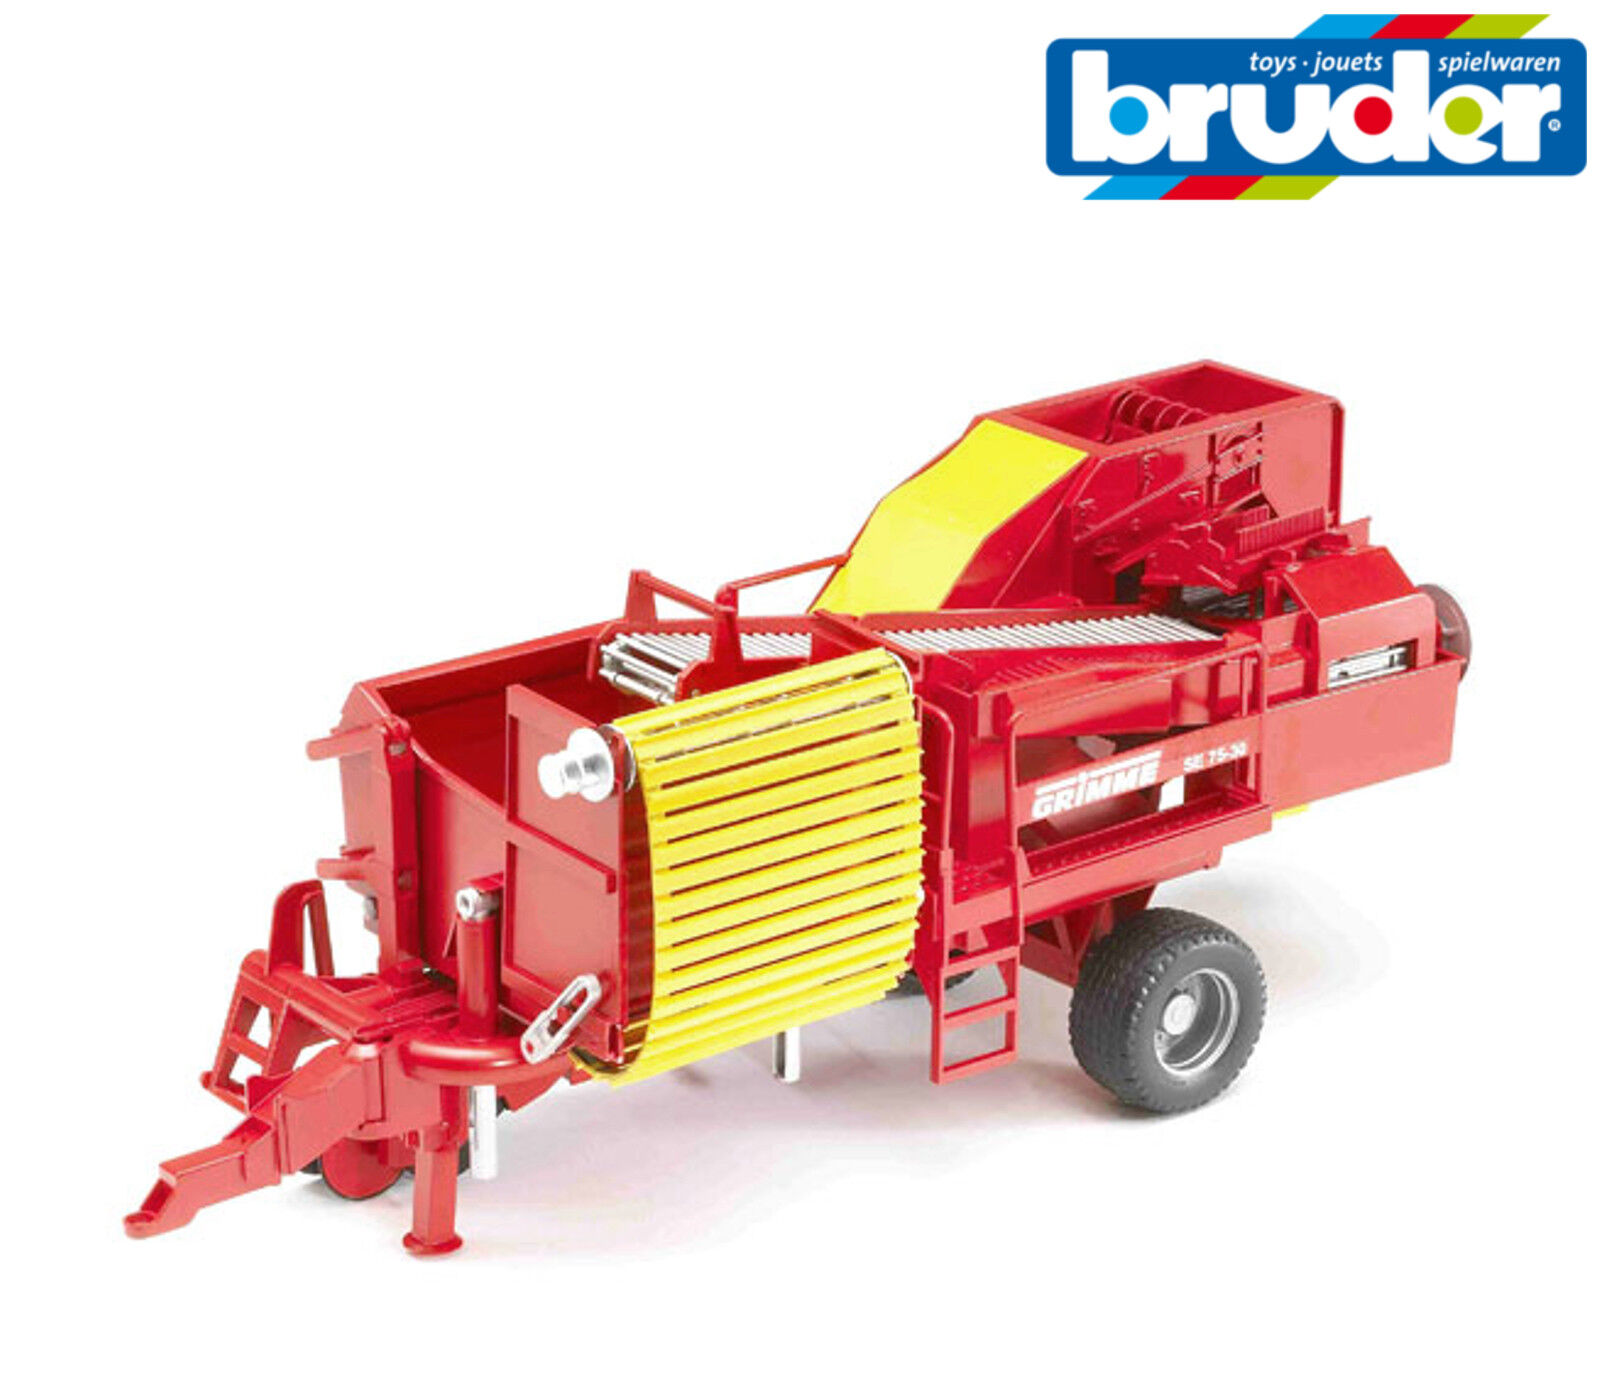 Bruder Toys 02130 Grimme Potato Harvester Digger with 80 Potatoes 1 16 Scale